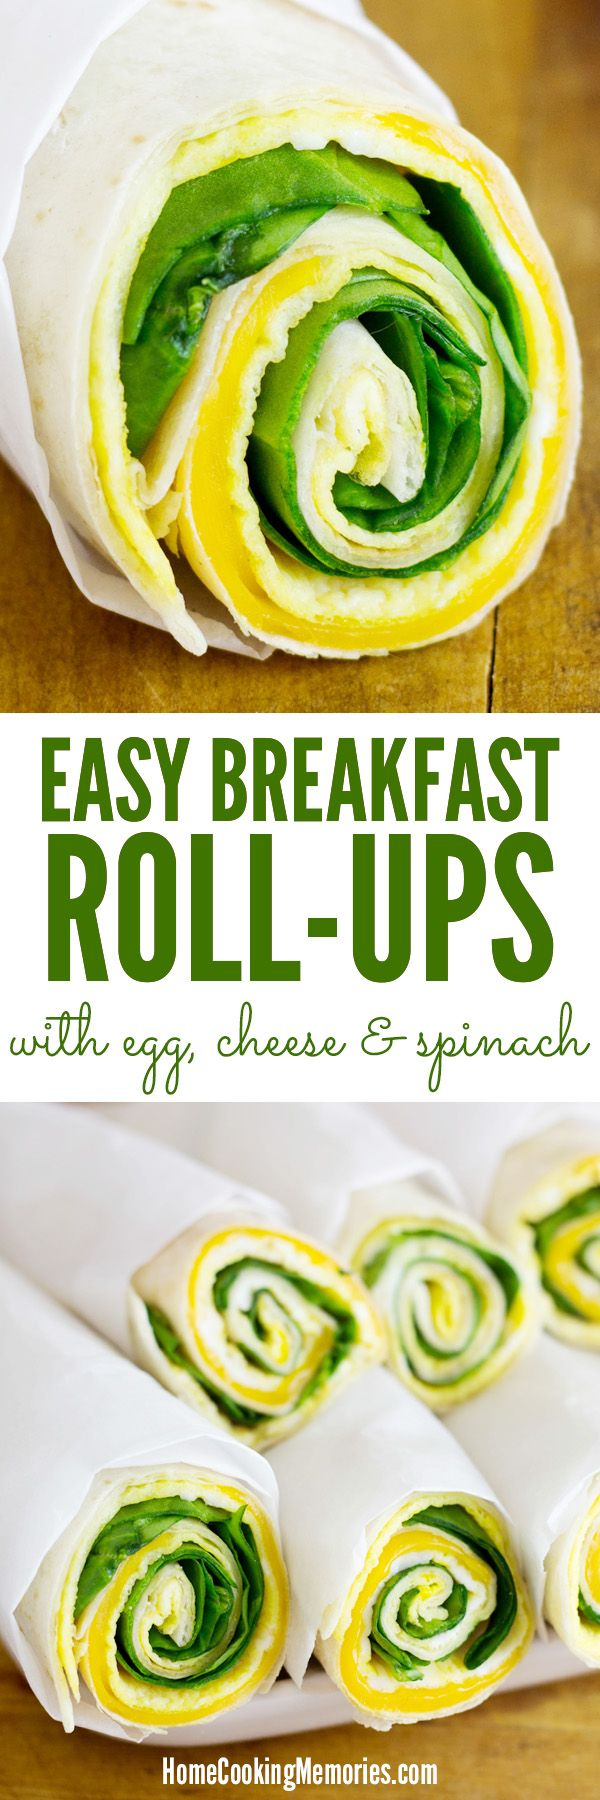 Quick, on-the-go breakfast idea for busy mornings! Inspired by breakfast burritos, but the egg in these Easy Breakfast Roll-Ups is cooked flat like an omelet, instead of scrambled. It's topped with cheese, fresh baby spinach and rolled up in a tortilla.